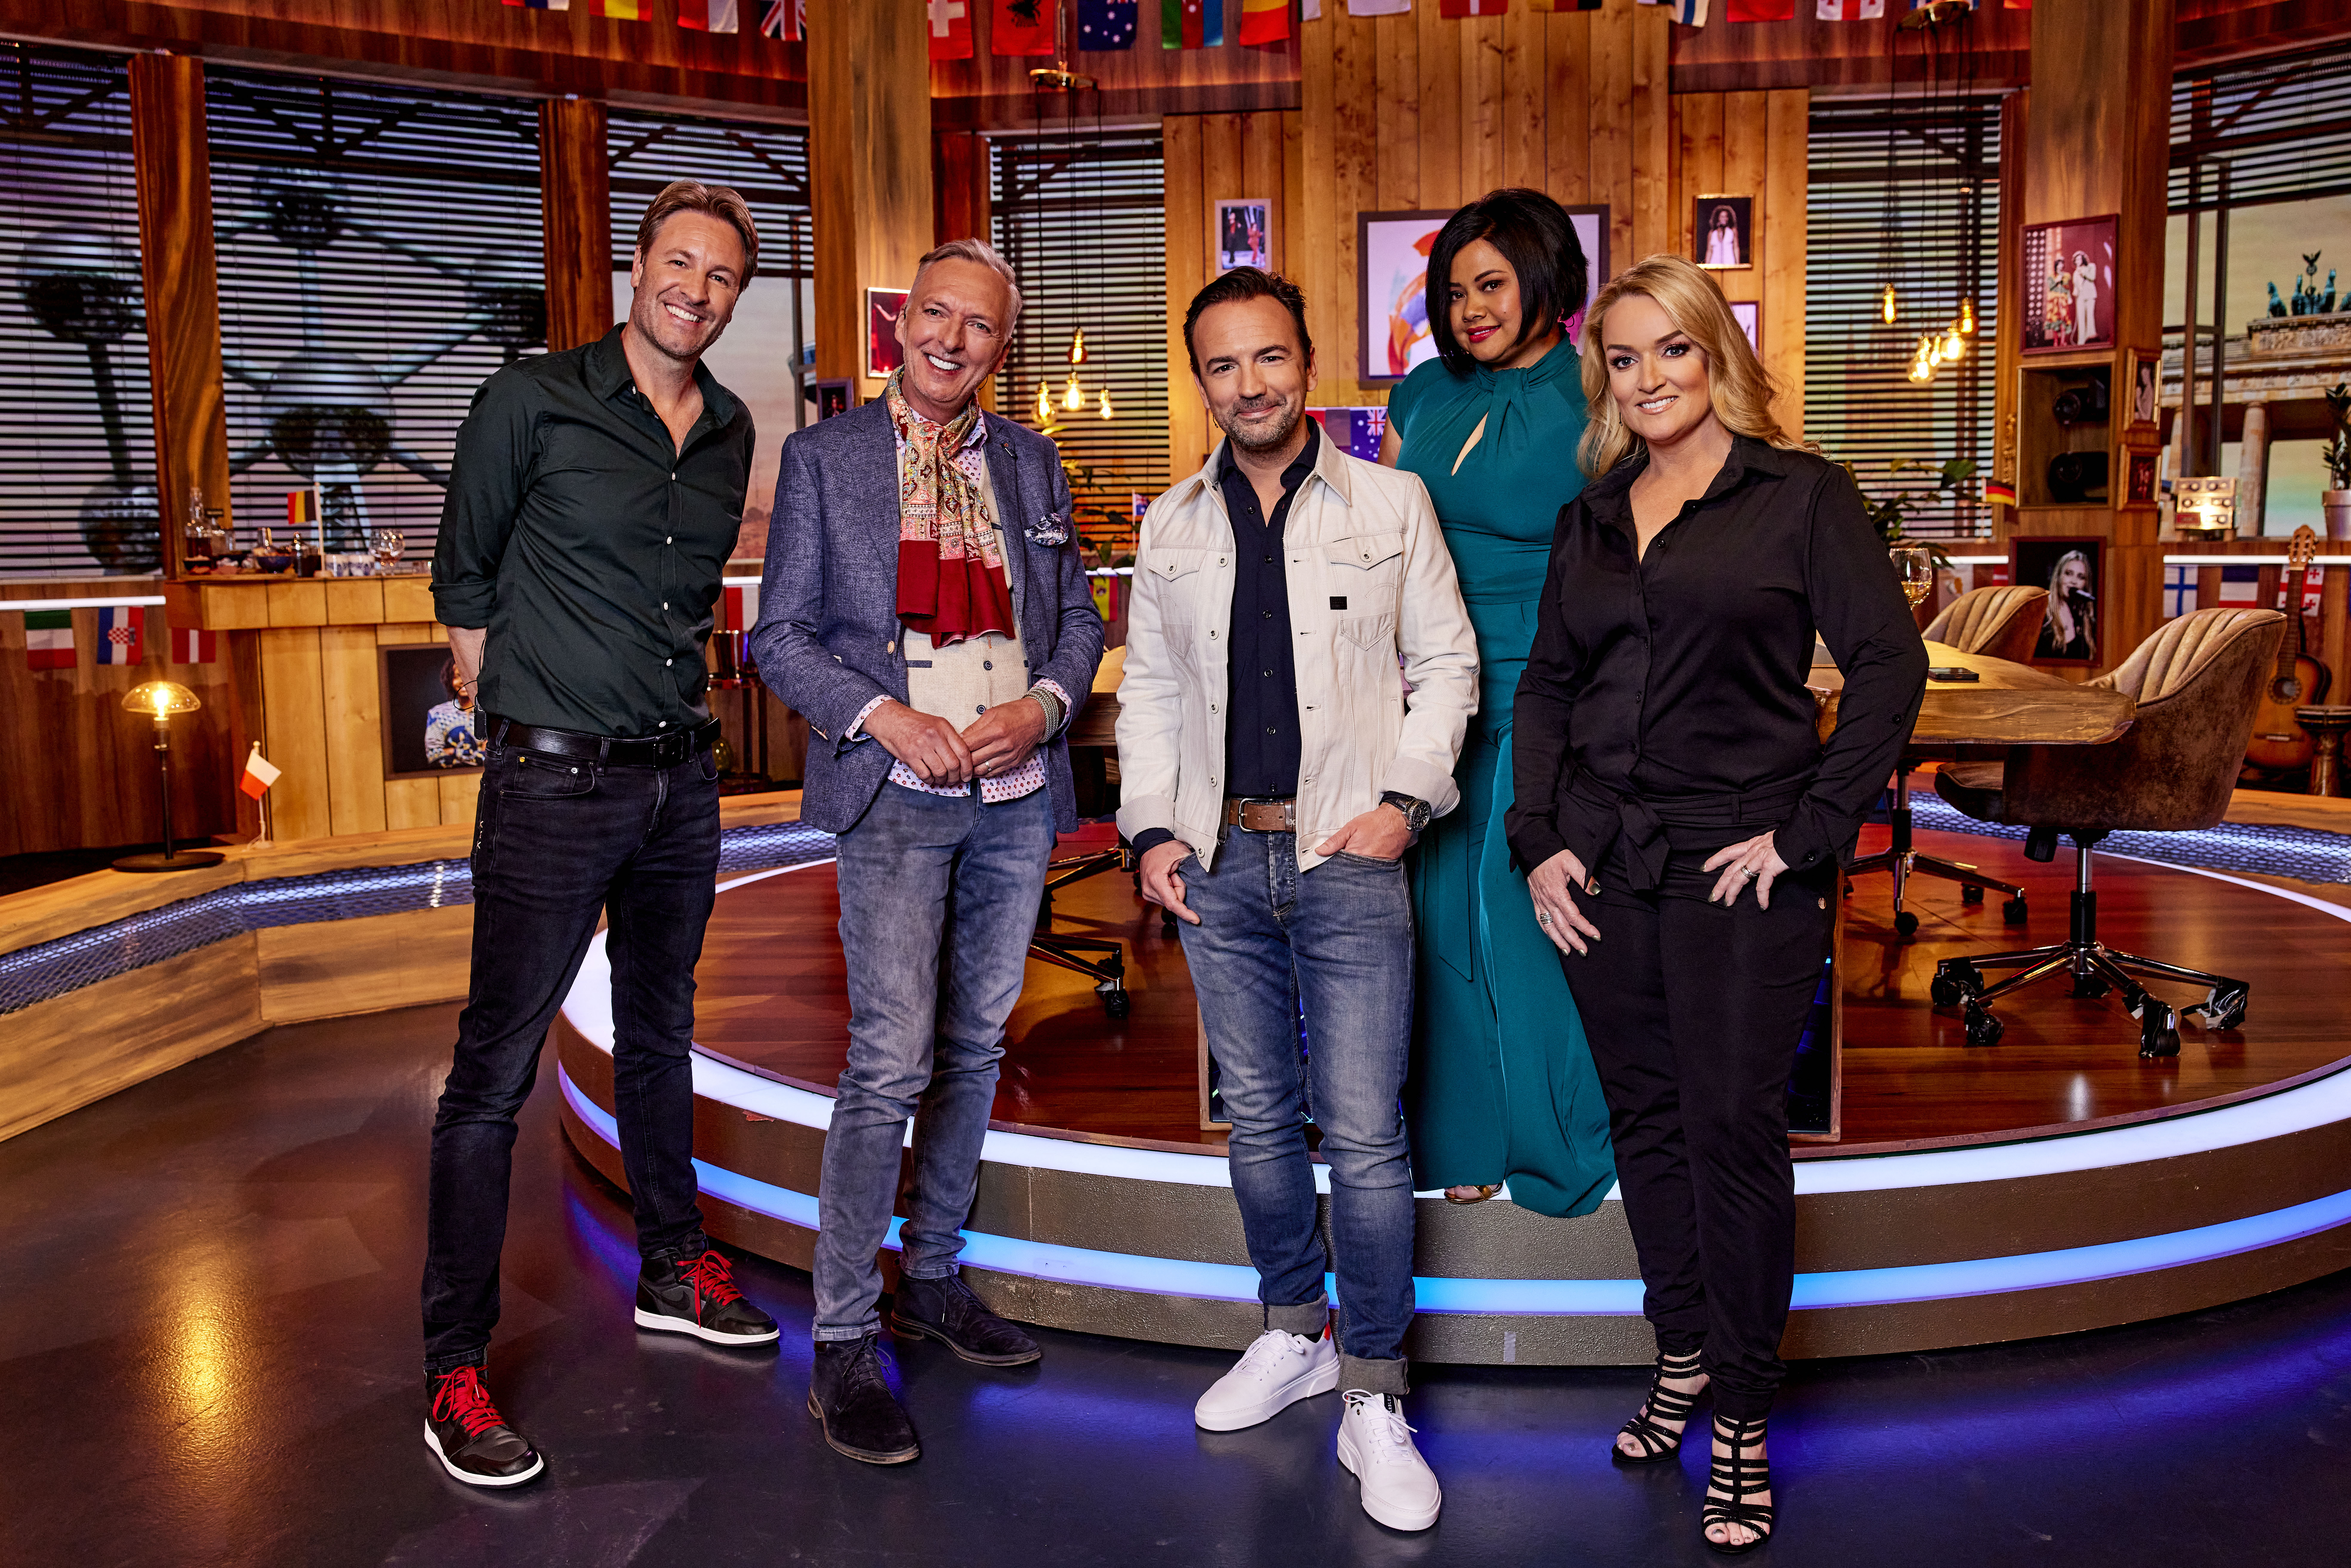 De Radio 10 Songfestivalquiz C William Rutten